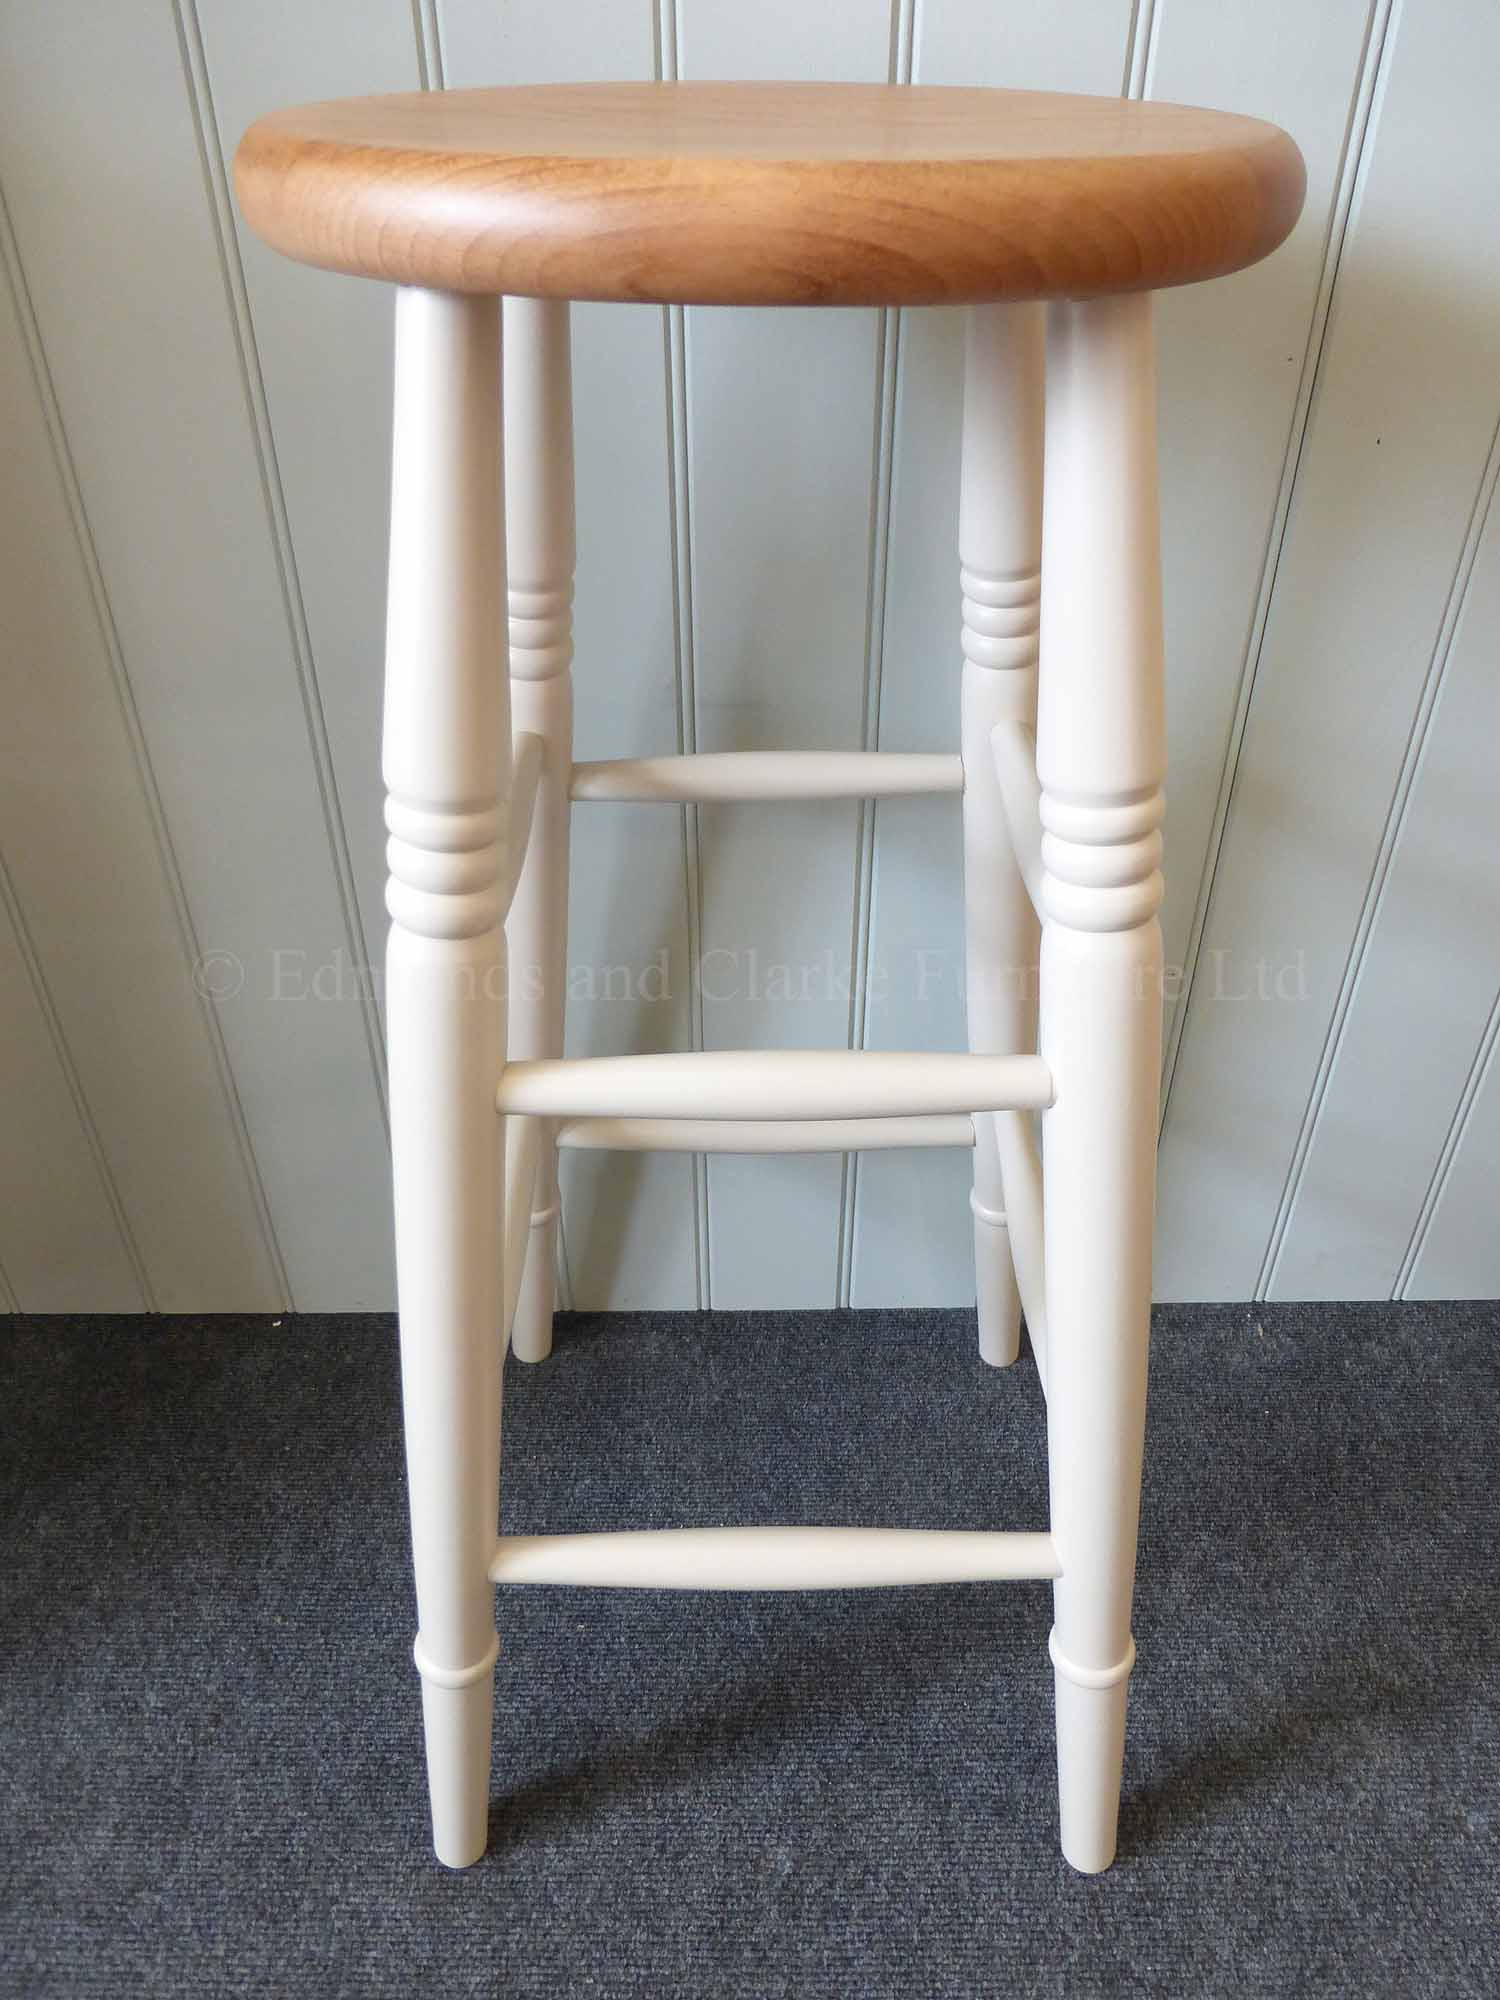 High farmhouse style stools painted